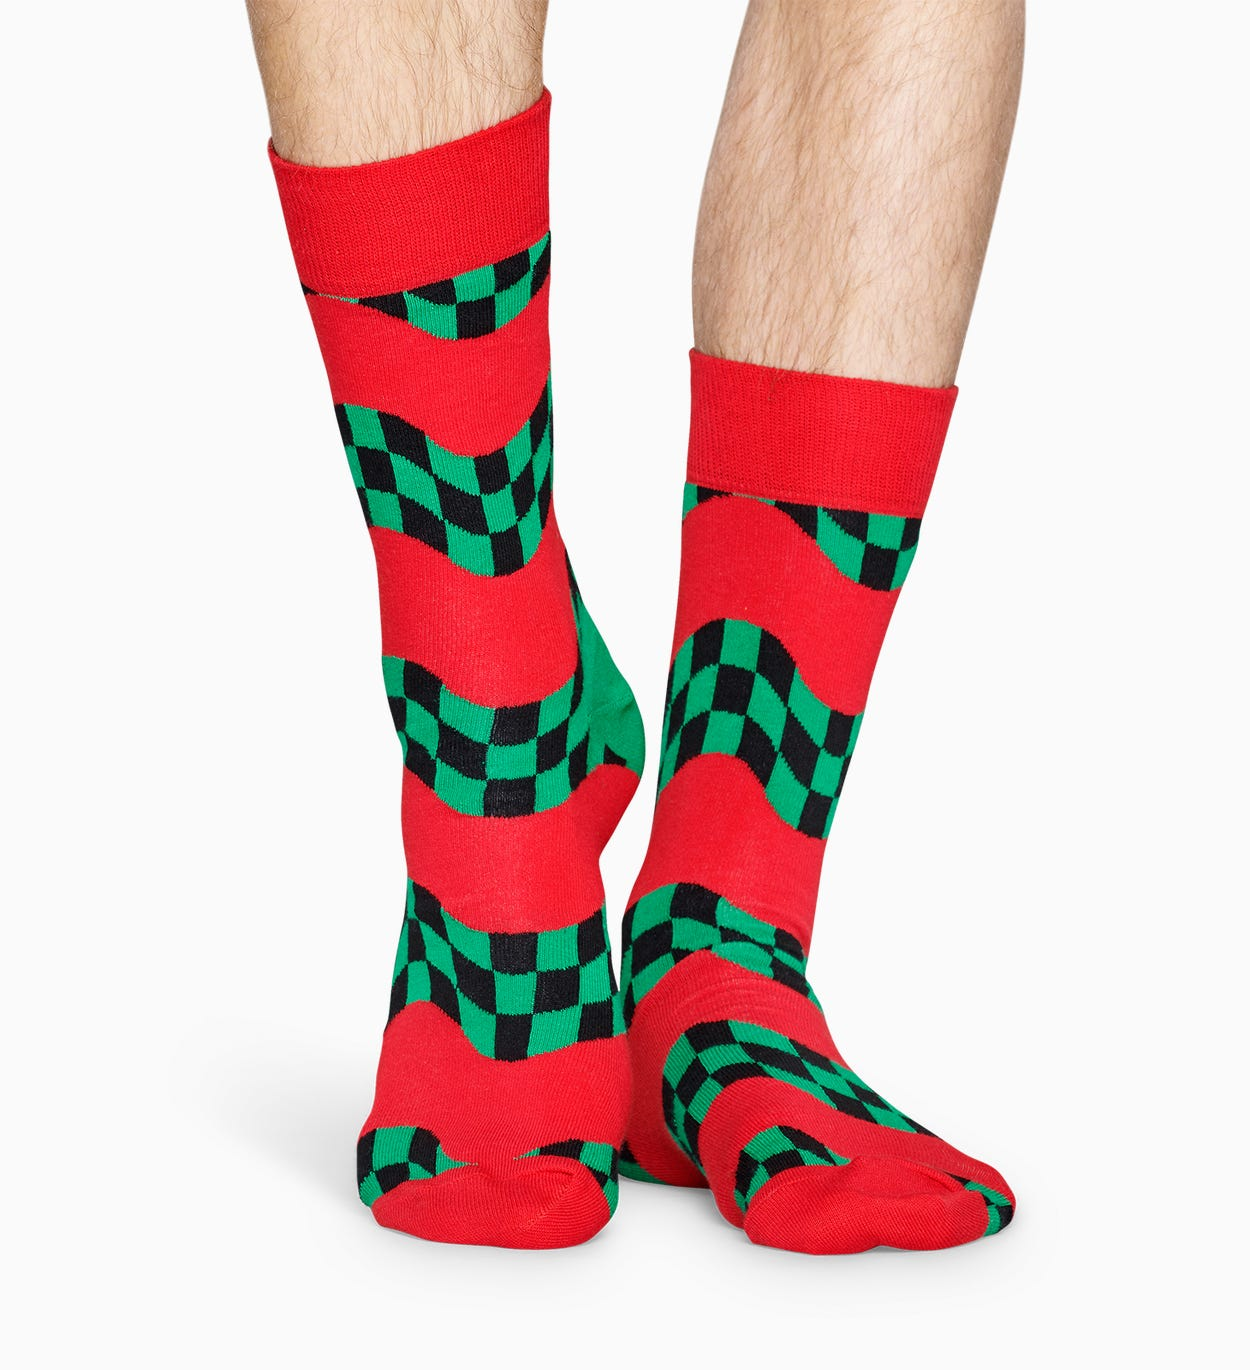 Patterned Red Socks: Race | Happy Socks